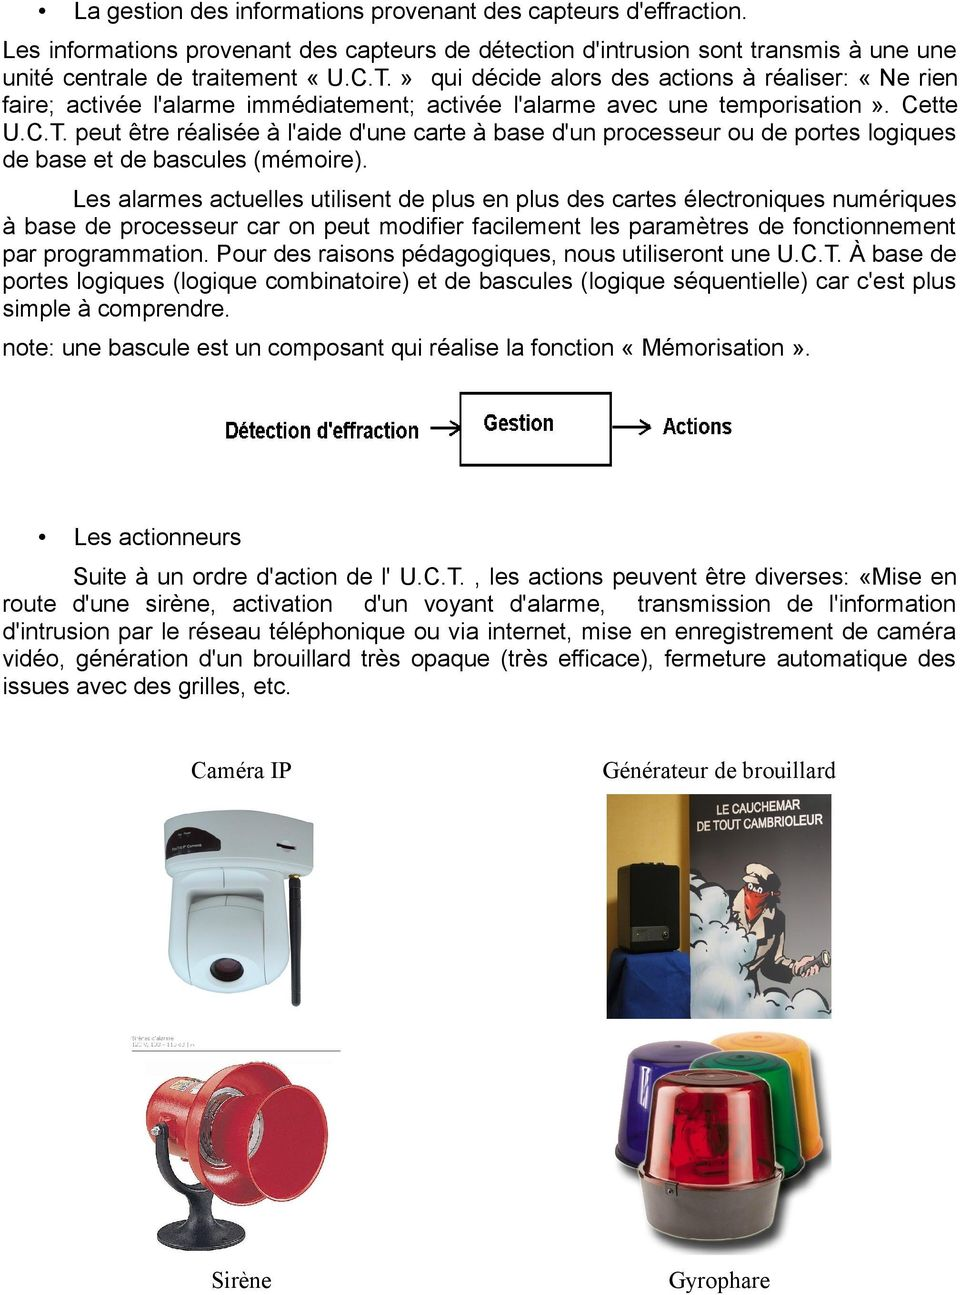 Principes de base d 39 une alarme anti intrusion pdf for Porte logique pdf